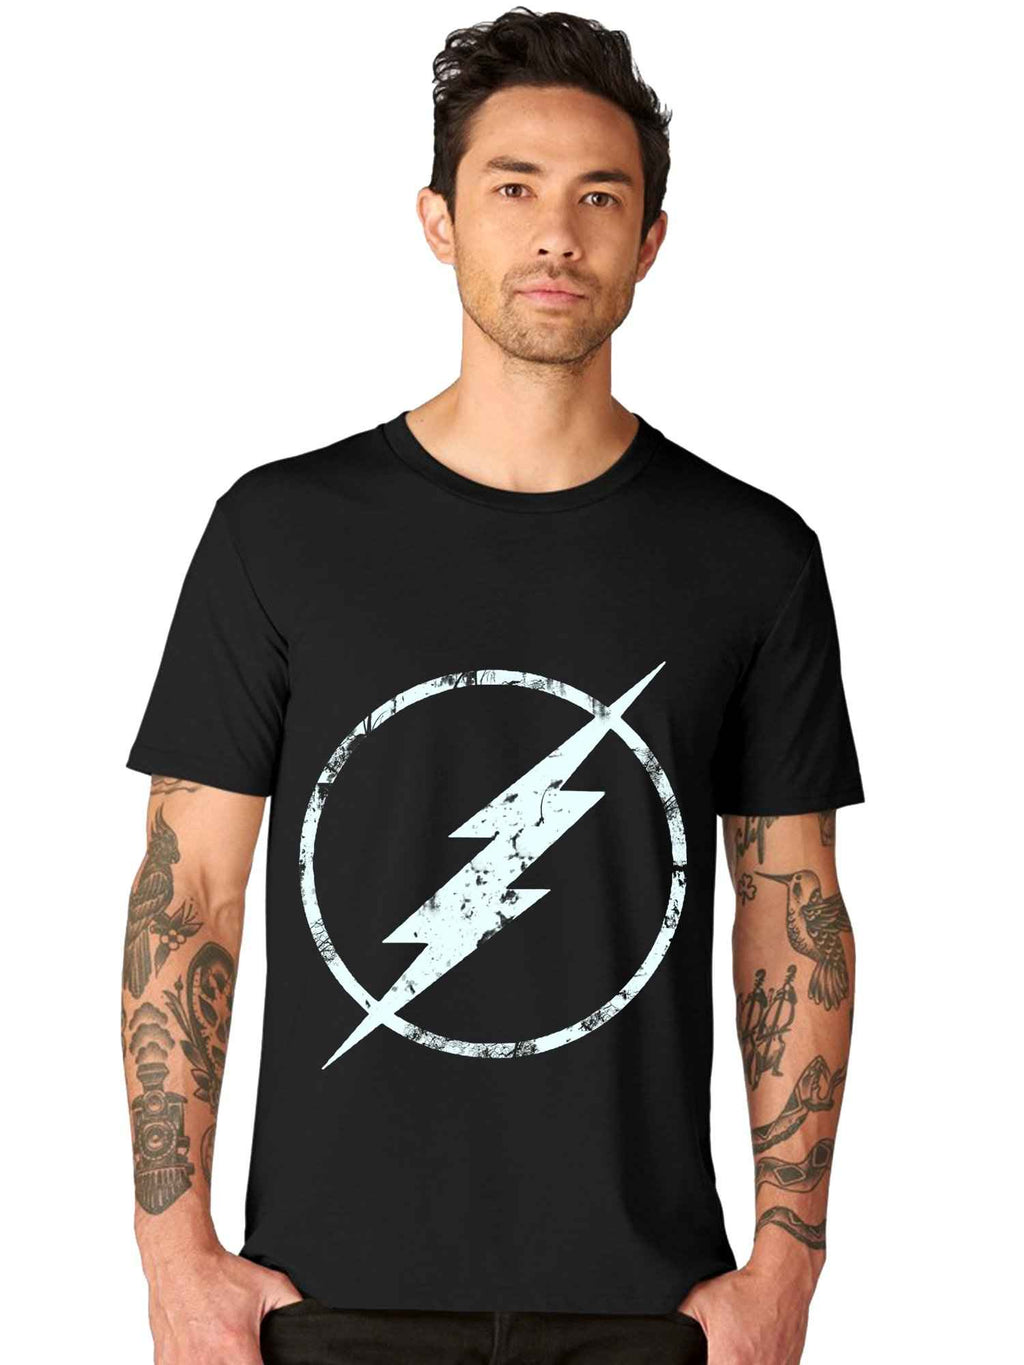 Glow in Dark Flash Half T shirt - bluehaat